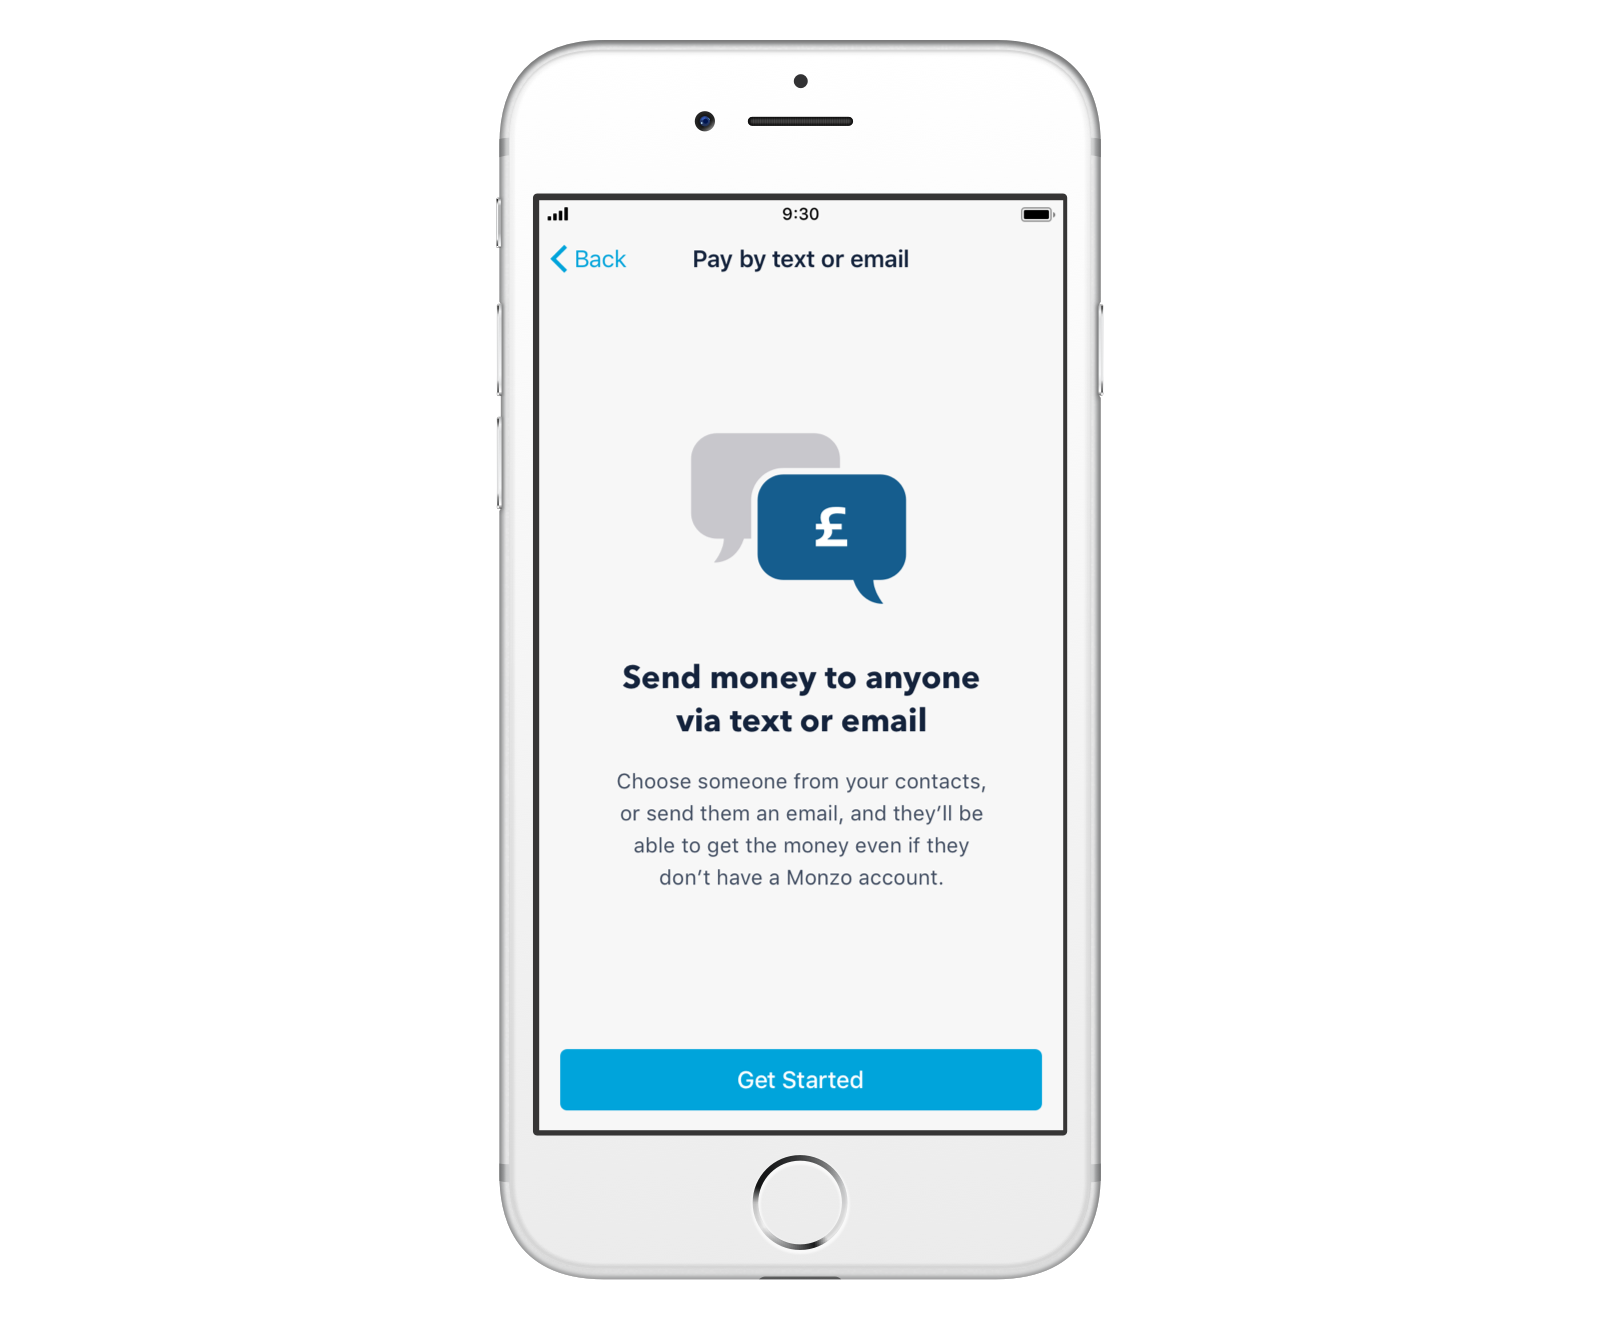 Screenshot of paying someone by text or email